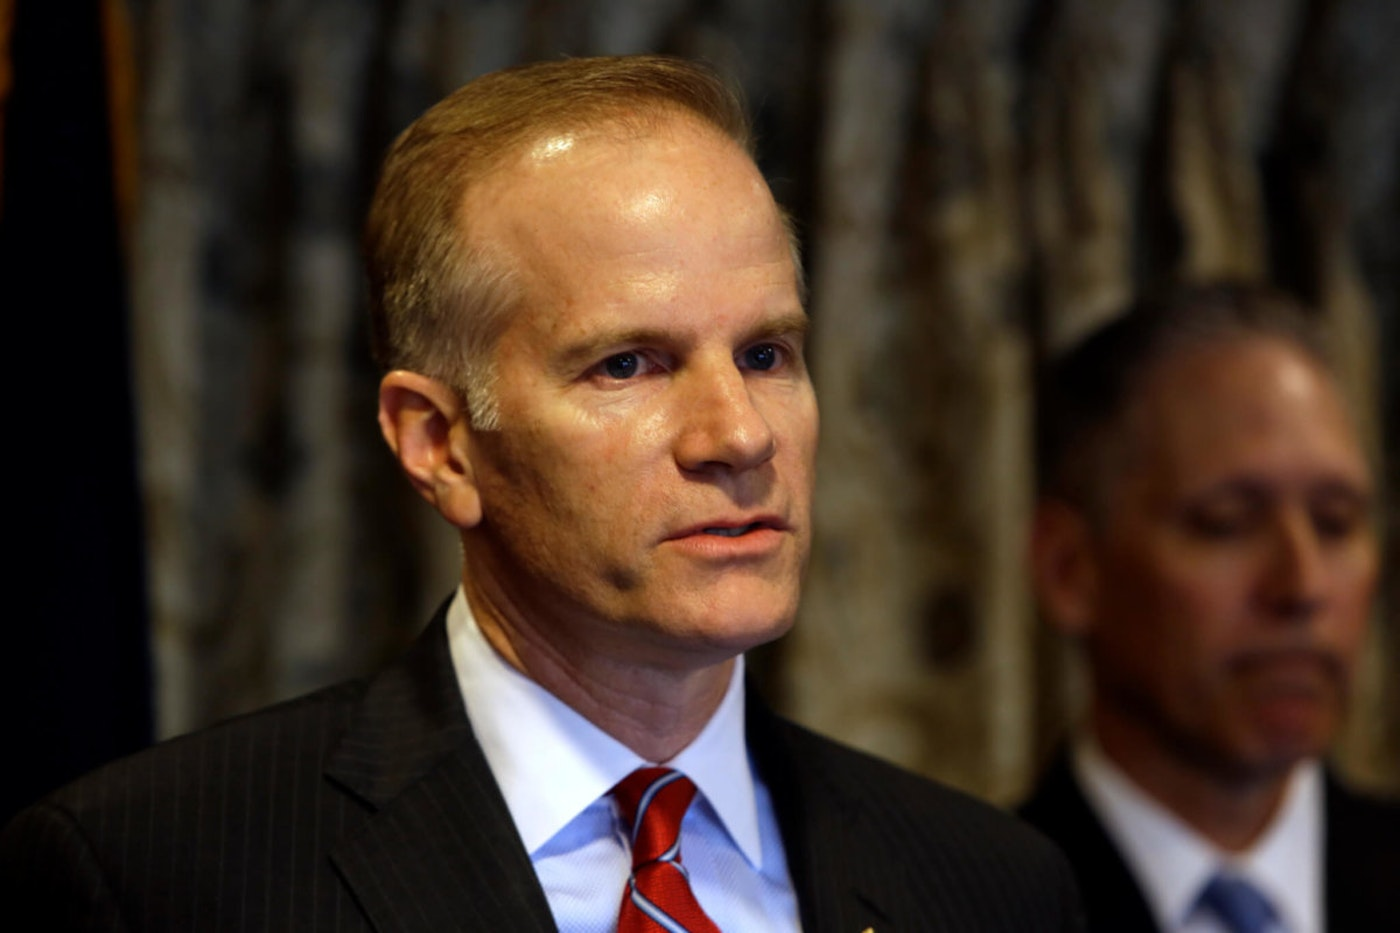 US Attorney William McSwain pauses during a news conference at the Lancaster County Courthouse in July 2019. McSwain, the top federal prosecutor in Philadelphia appointed by Donald Trump, has written to the former president to seek his endorsement in a crowded Republican primary race to run for governor in next year's election. (AP Photo/Jacqueline Larma, File)